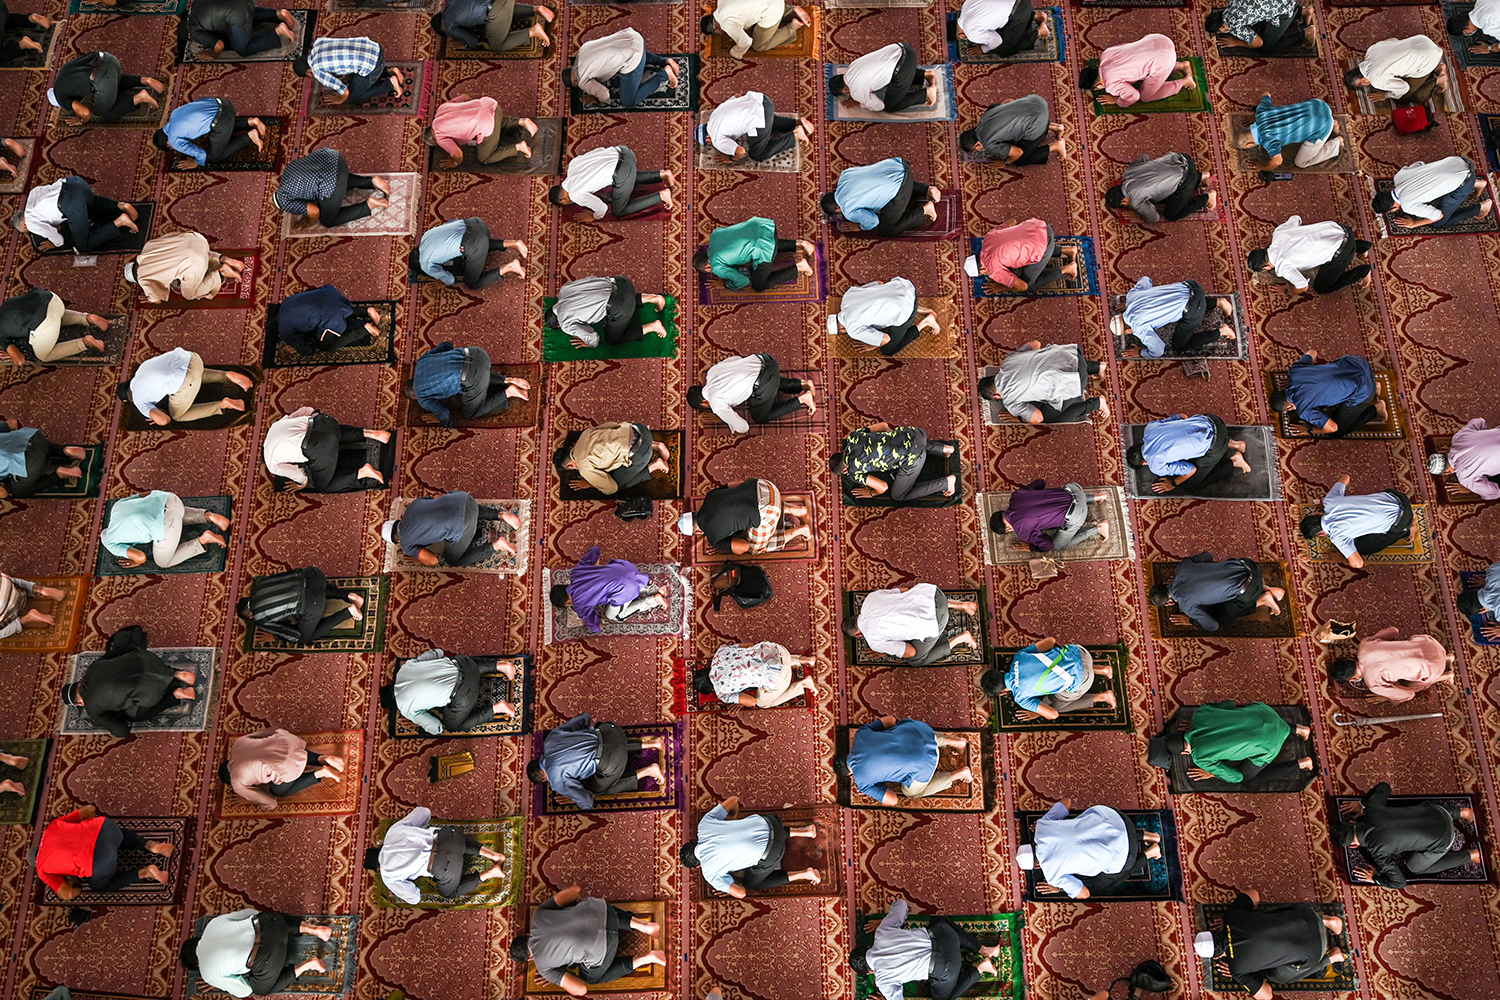 Muslims devotees practice social distancing during prayers on the first Friday of the holy month of Ramadan at the Putra Mosque in Putrajaya, Malaysia, on April 16. MOHD RASFAN/AFP via Getty Images